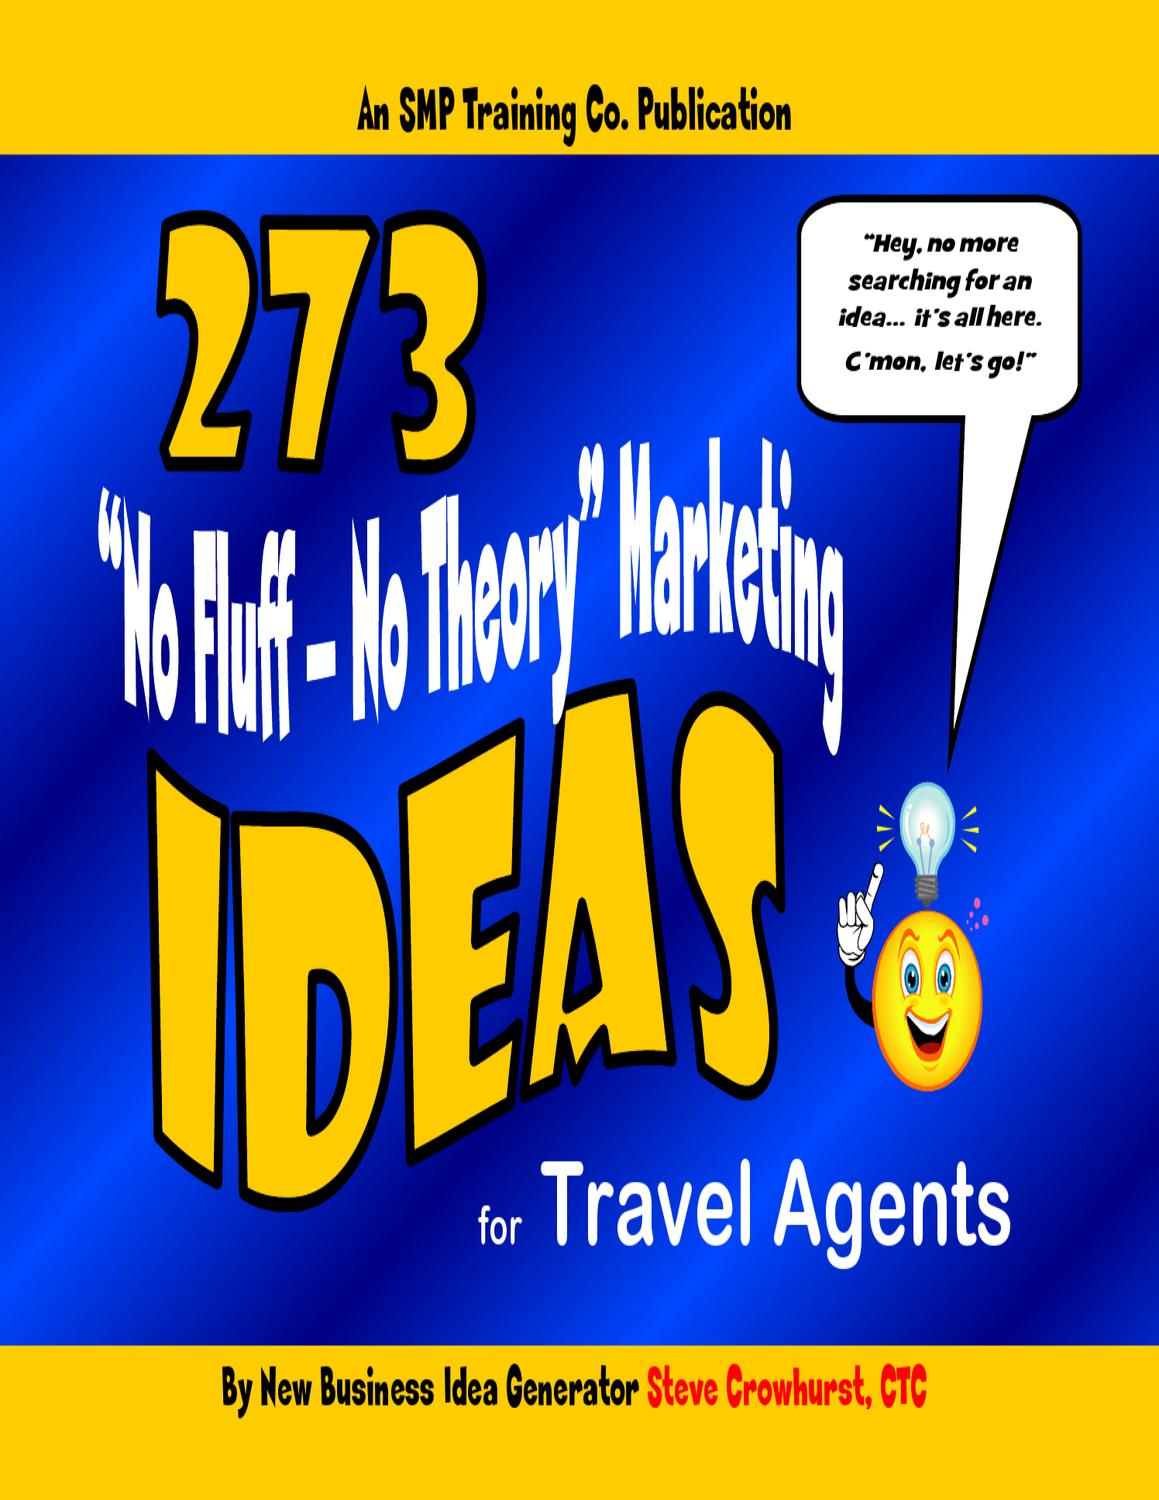 273 No Fluff Theory Marketing Ideas For Travel Agents By Smp Helicopter Flight Diagram Greeting Cards Zazzle Training Co Issuu